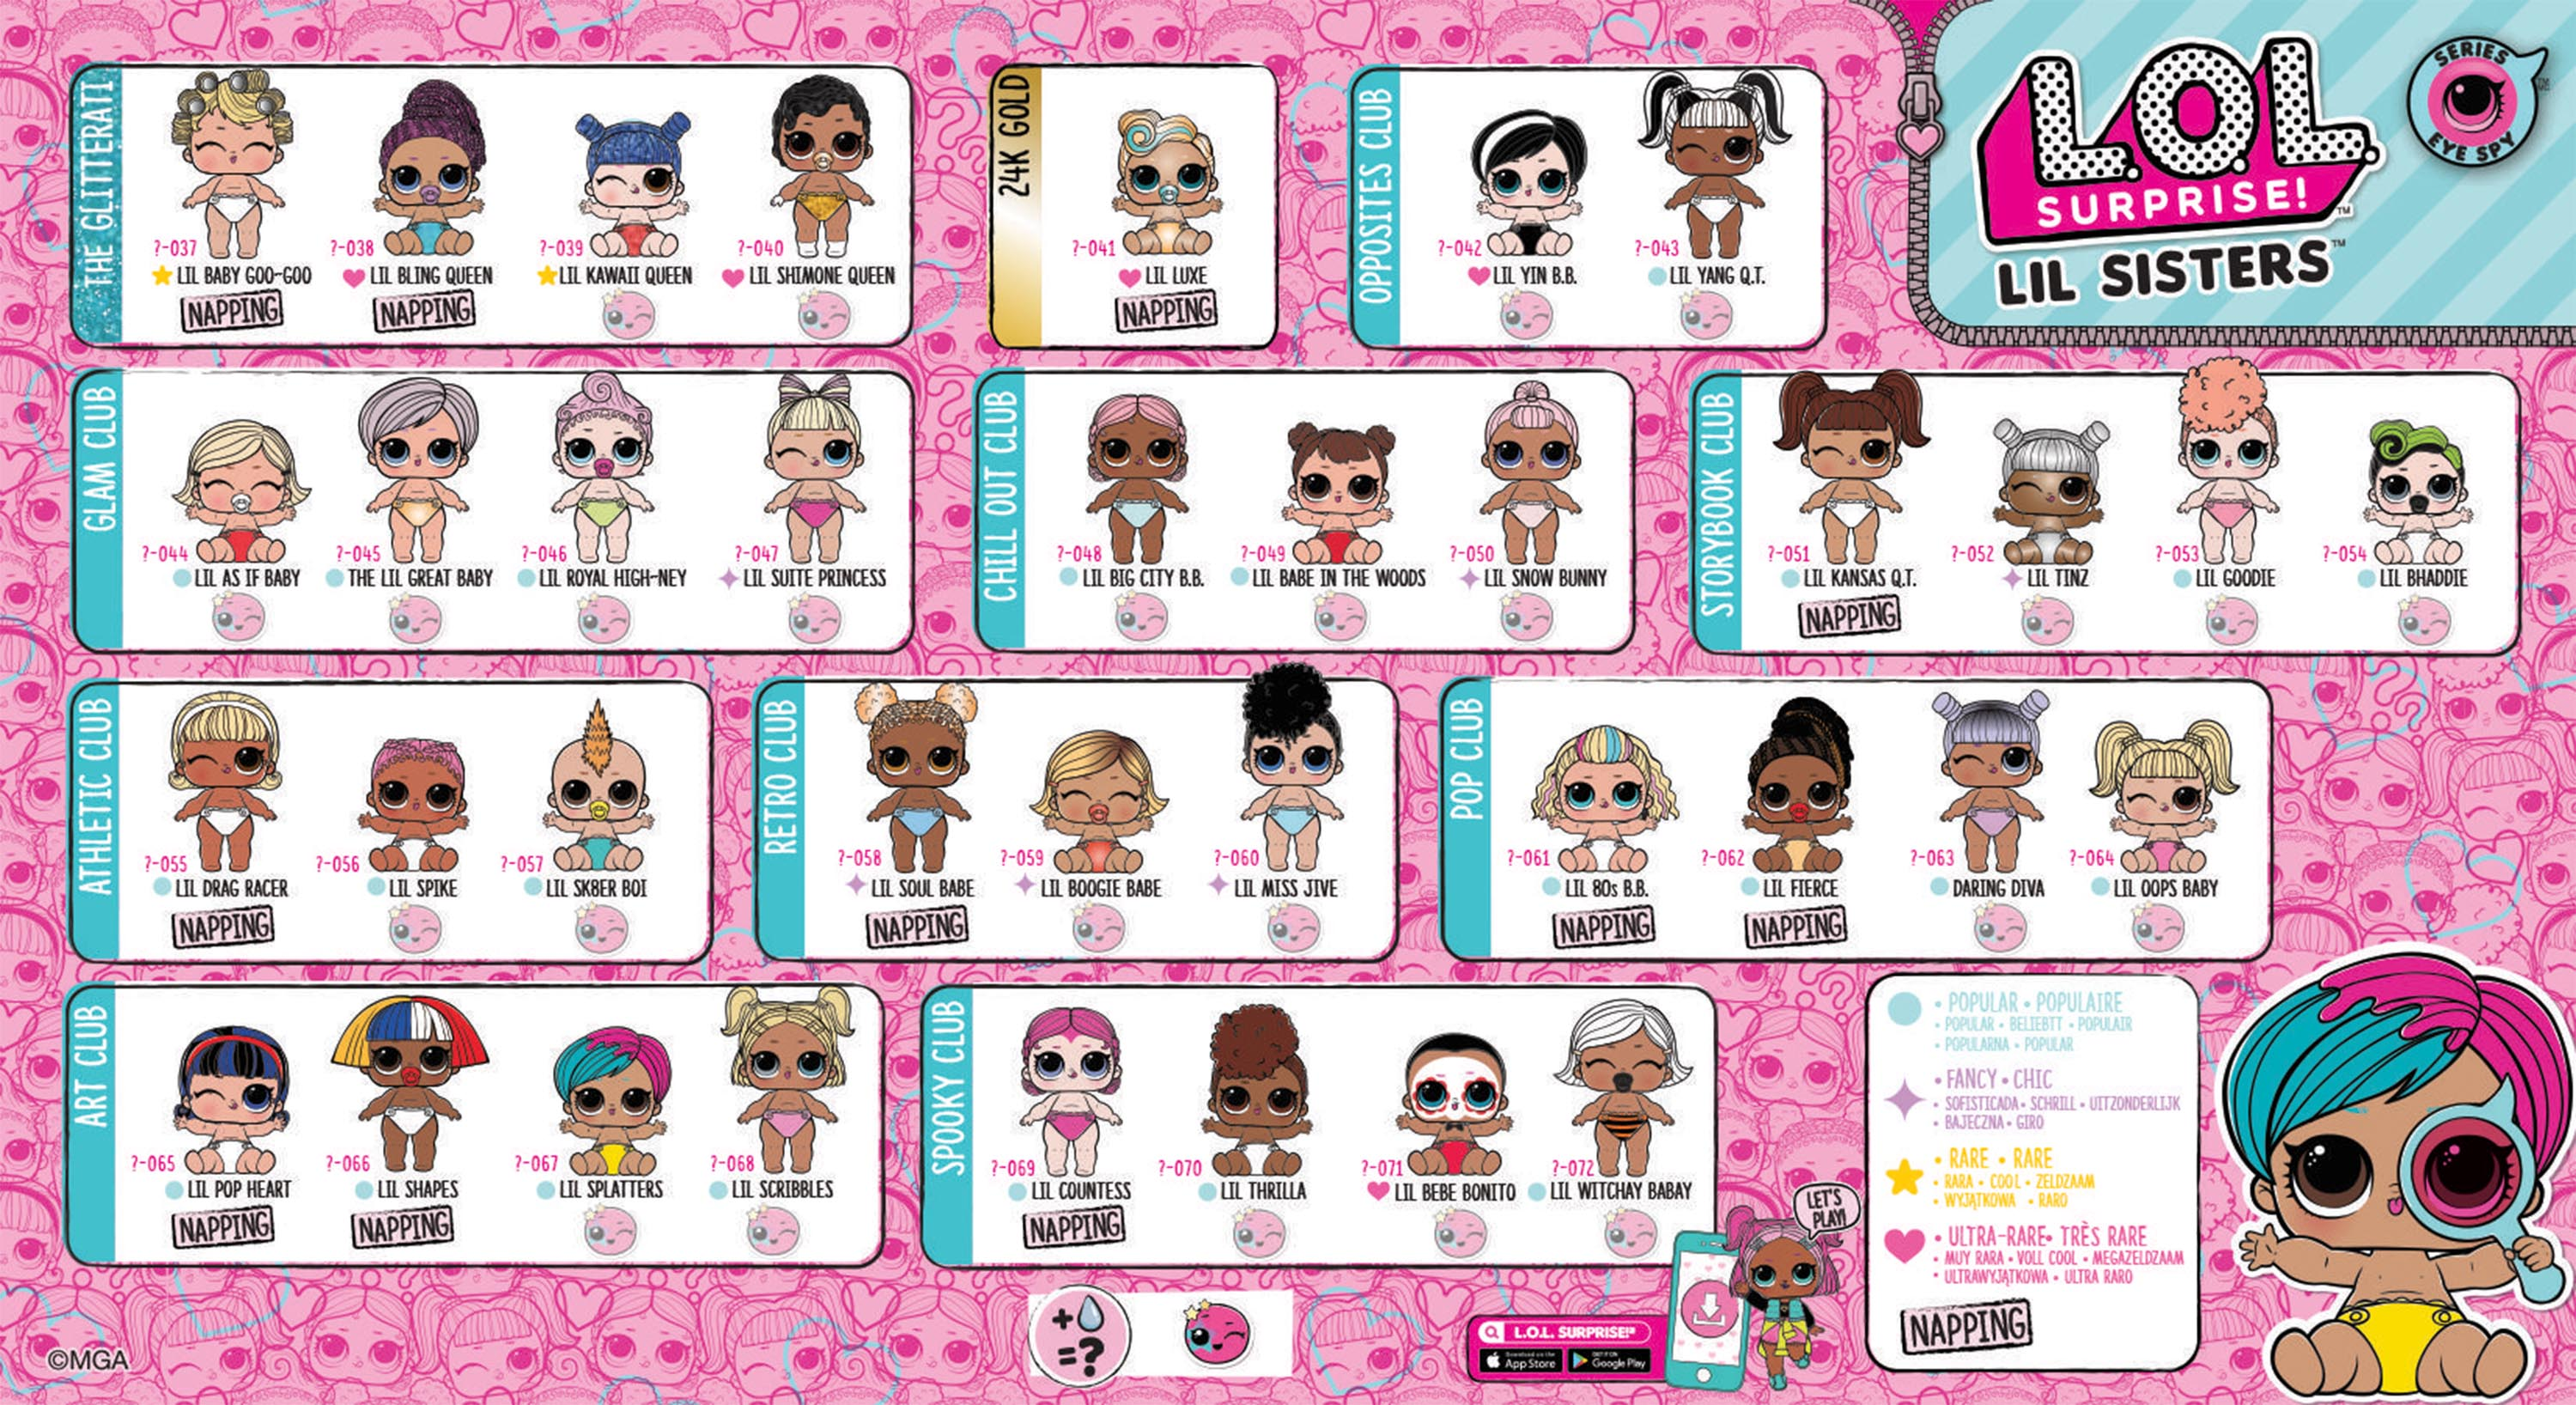 Lol surprise series 4 eye spy lil sisters wave 2 collector guide list checklist kids time